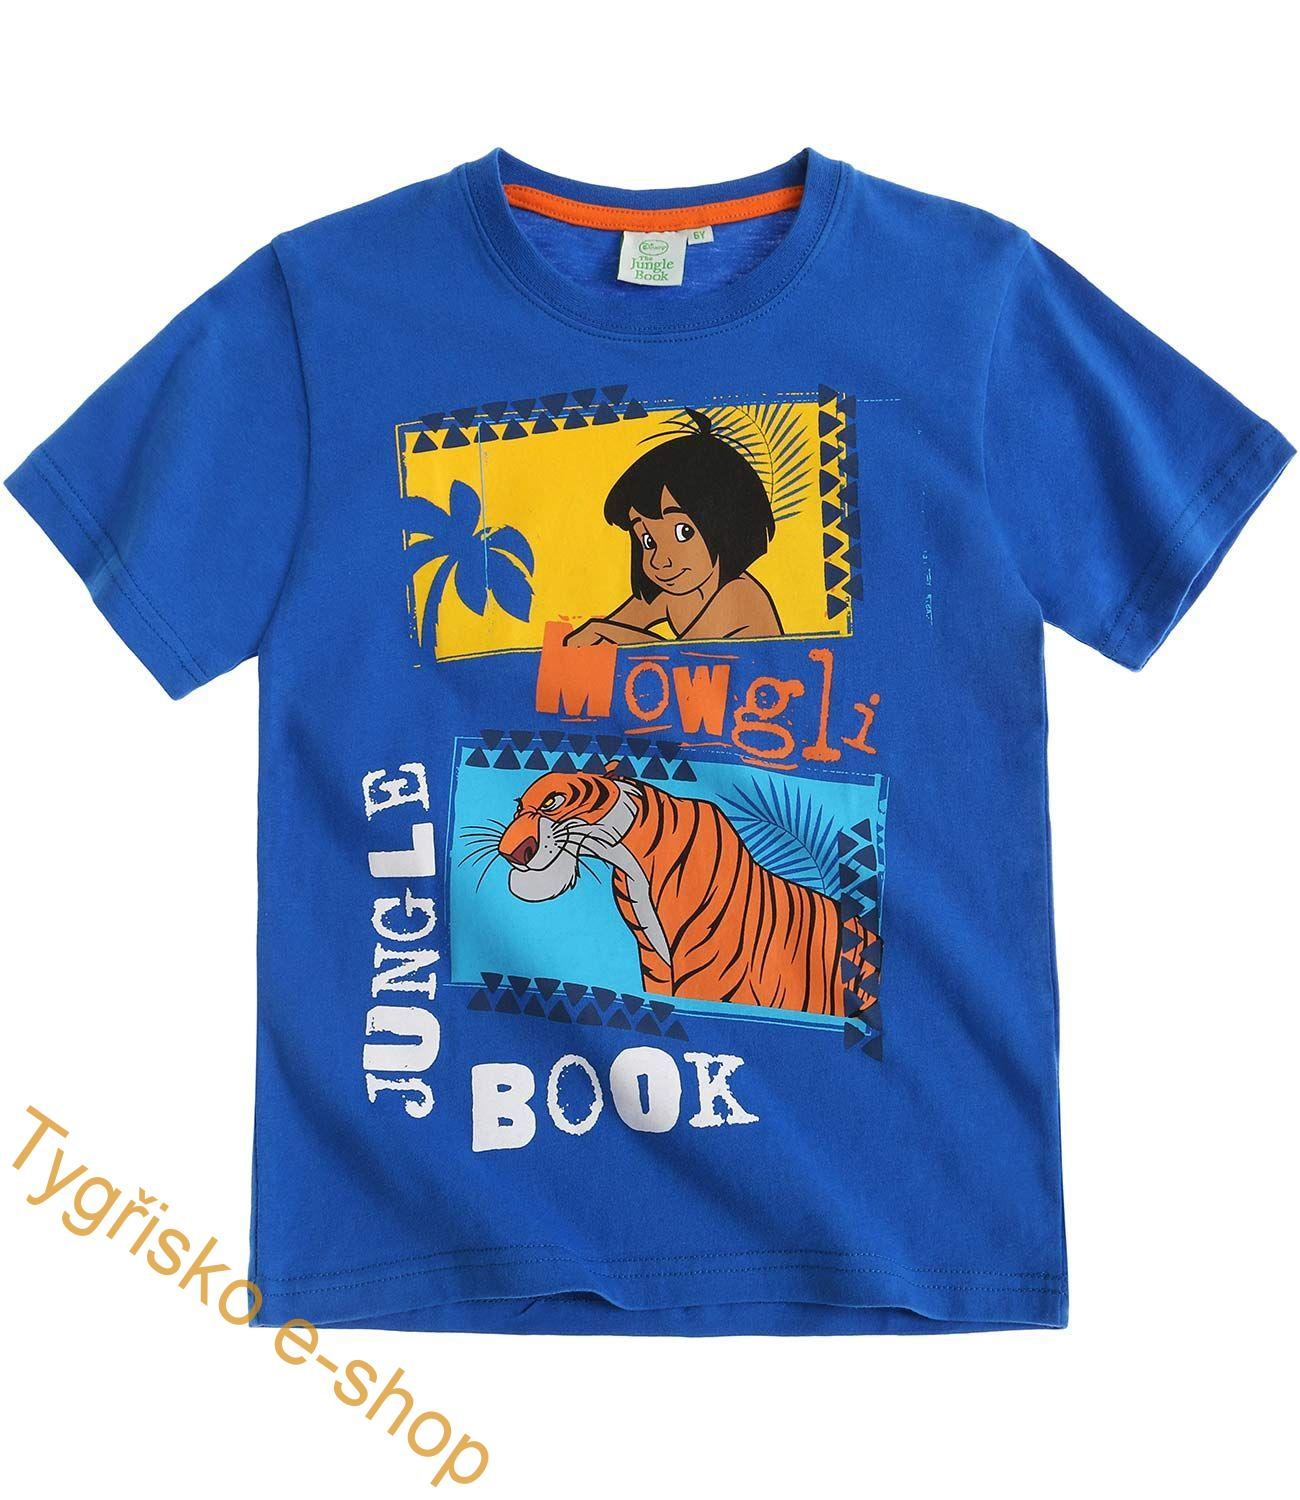 Oble en pro d ti disney kniha d ungl triko maugl s for Entire book on shirt